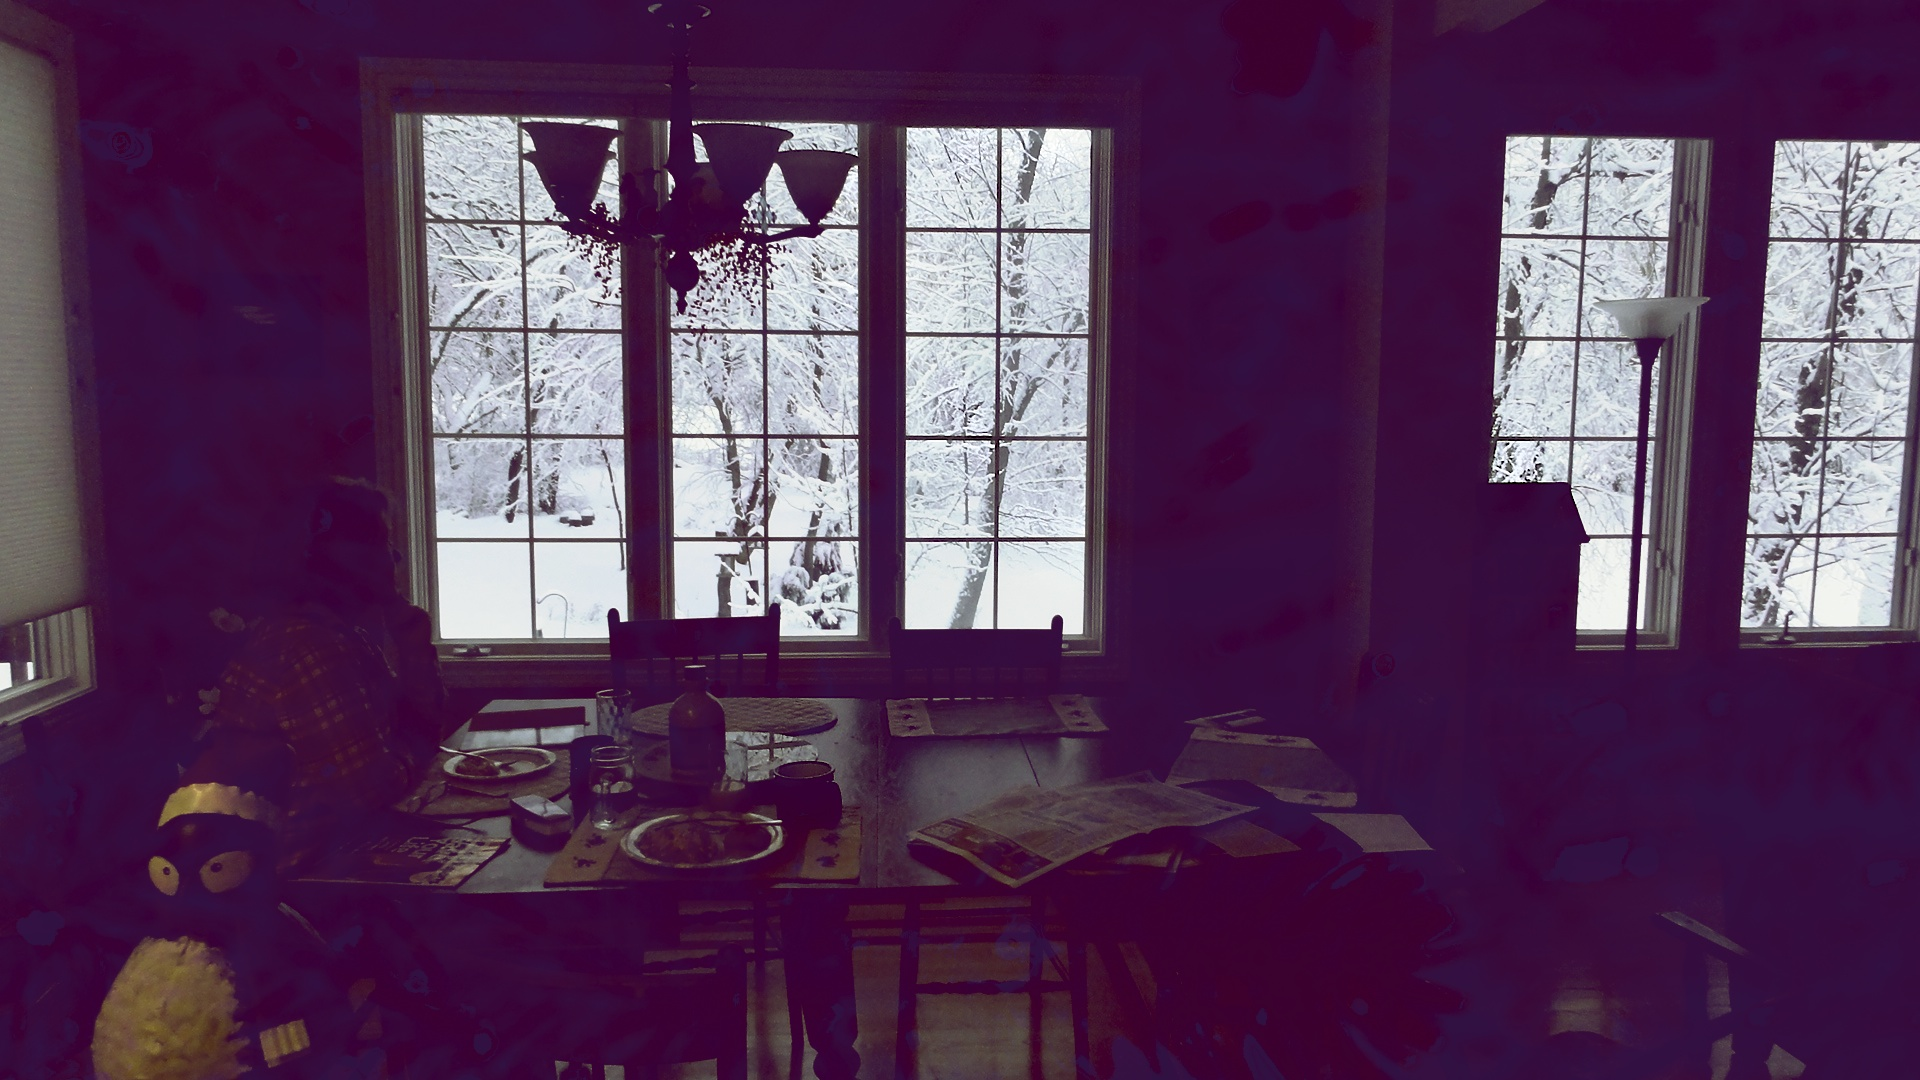 The morning after, An hour and a half of shoveling and i have breakfast in a fairyland.